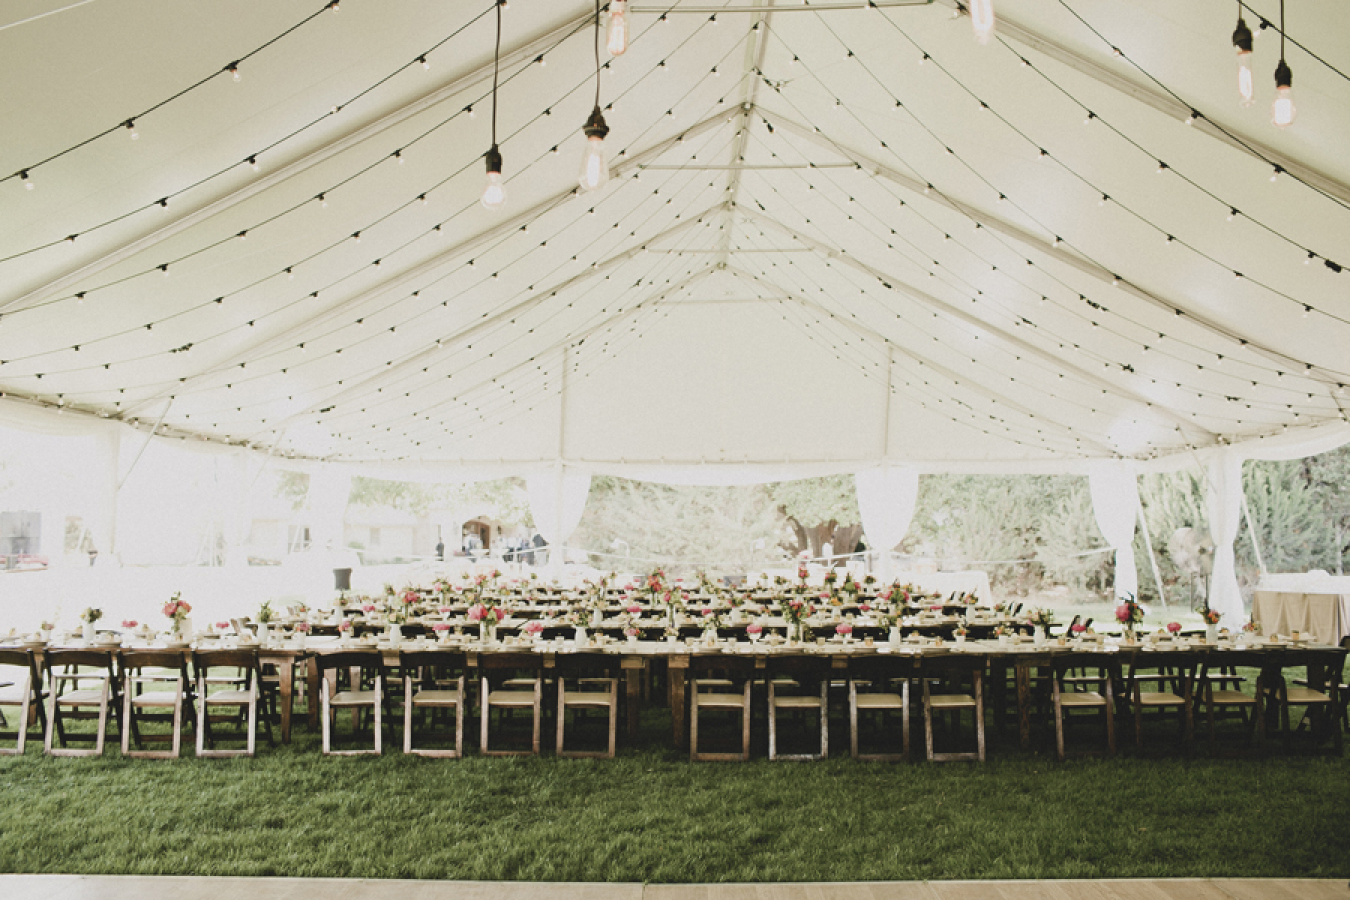 wedding, marquee, outdoor, nature, weather, weddings, bride, groom